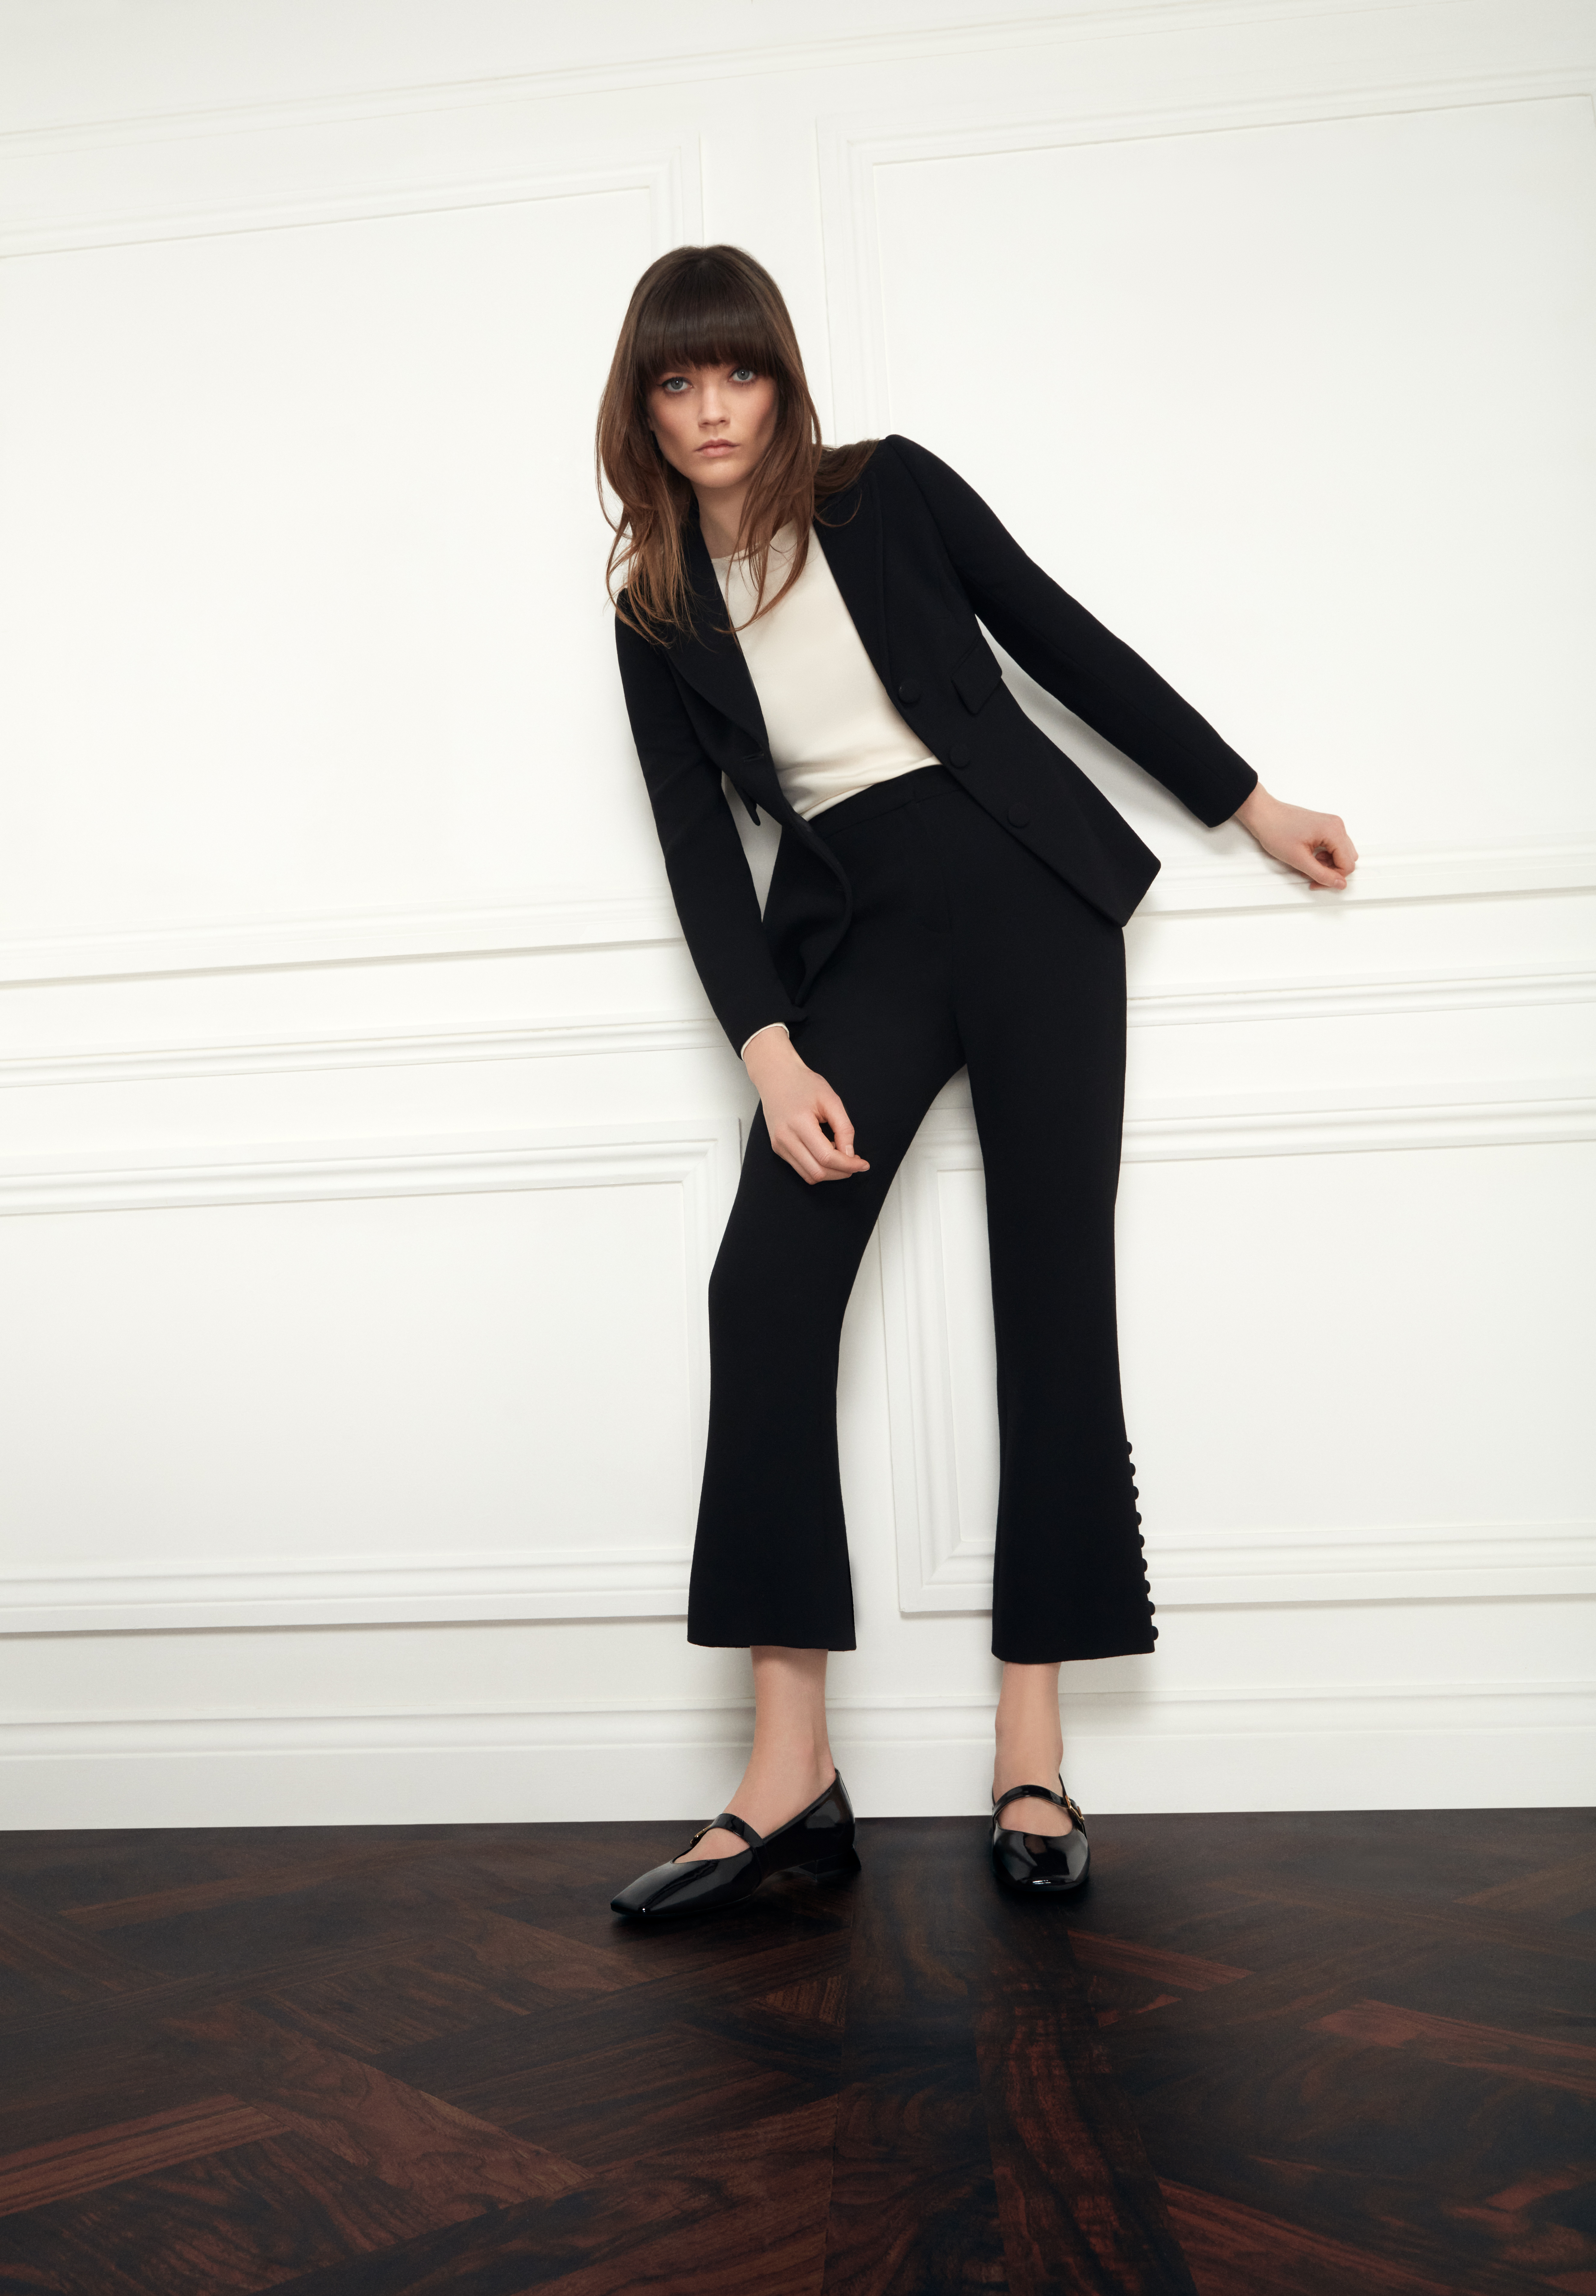 A look from the Jane fall 2021 collection. The Jane label was formerly known as Goat.